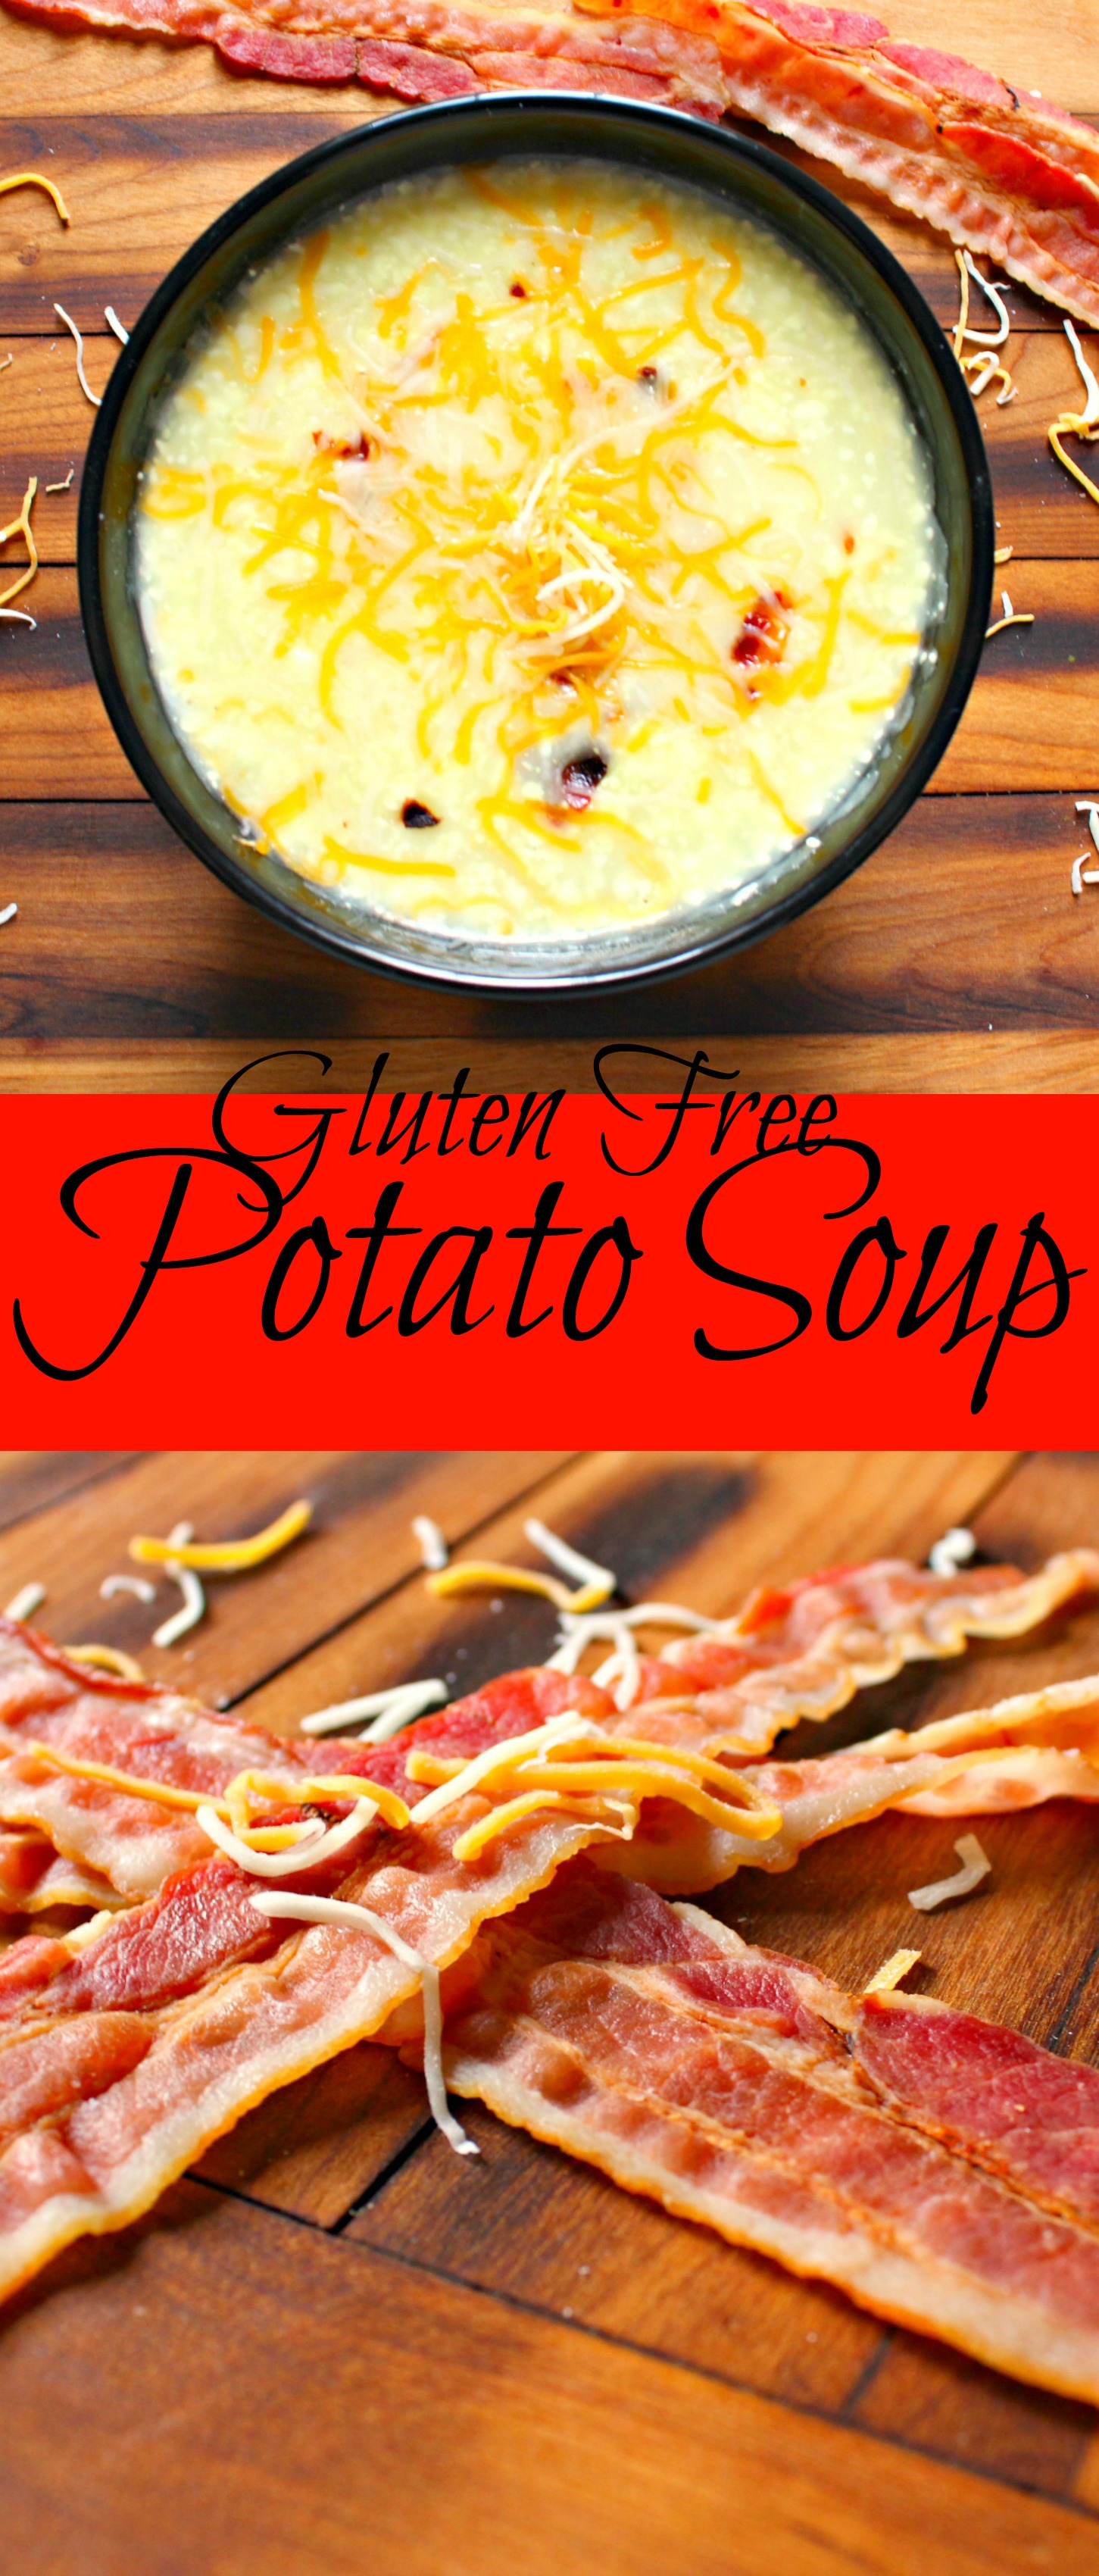 potato Soup2